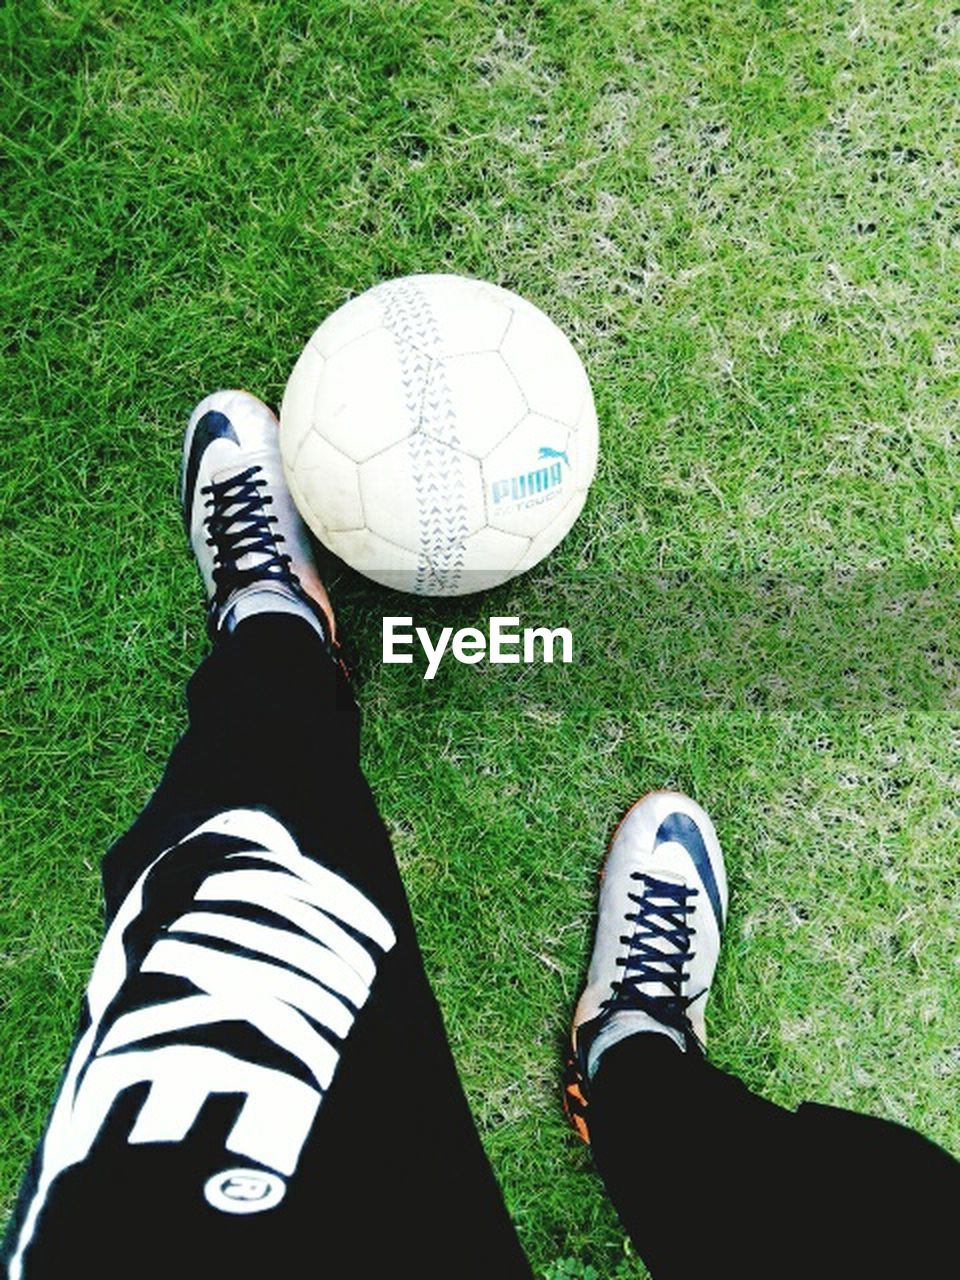 grass, shoe, one person, low section, human leg, human body part, personal perspective, real people, high angle view, human foot, standing, sport, canvas shoe, men, leisure activity, one man only, ball, soccer, green color, lifestyles, day, sock, outdoors, golf, only men, soccer shoe, close-up, people, adult, adults only